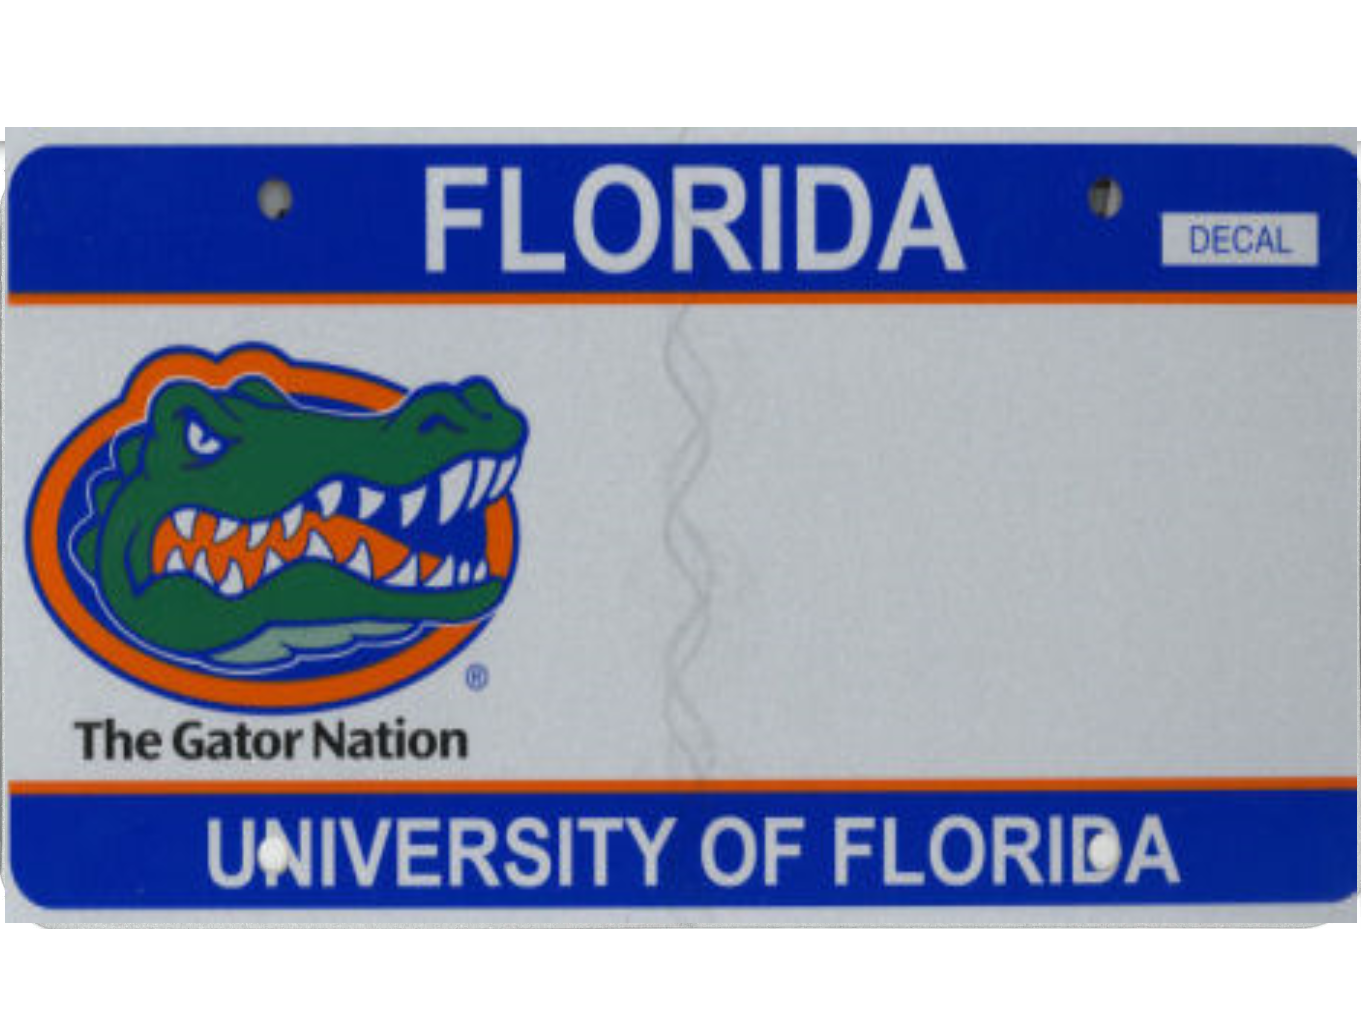 The University of Florida license plate.